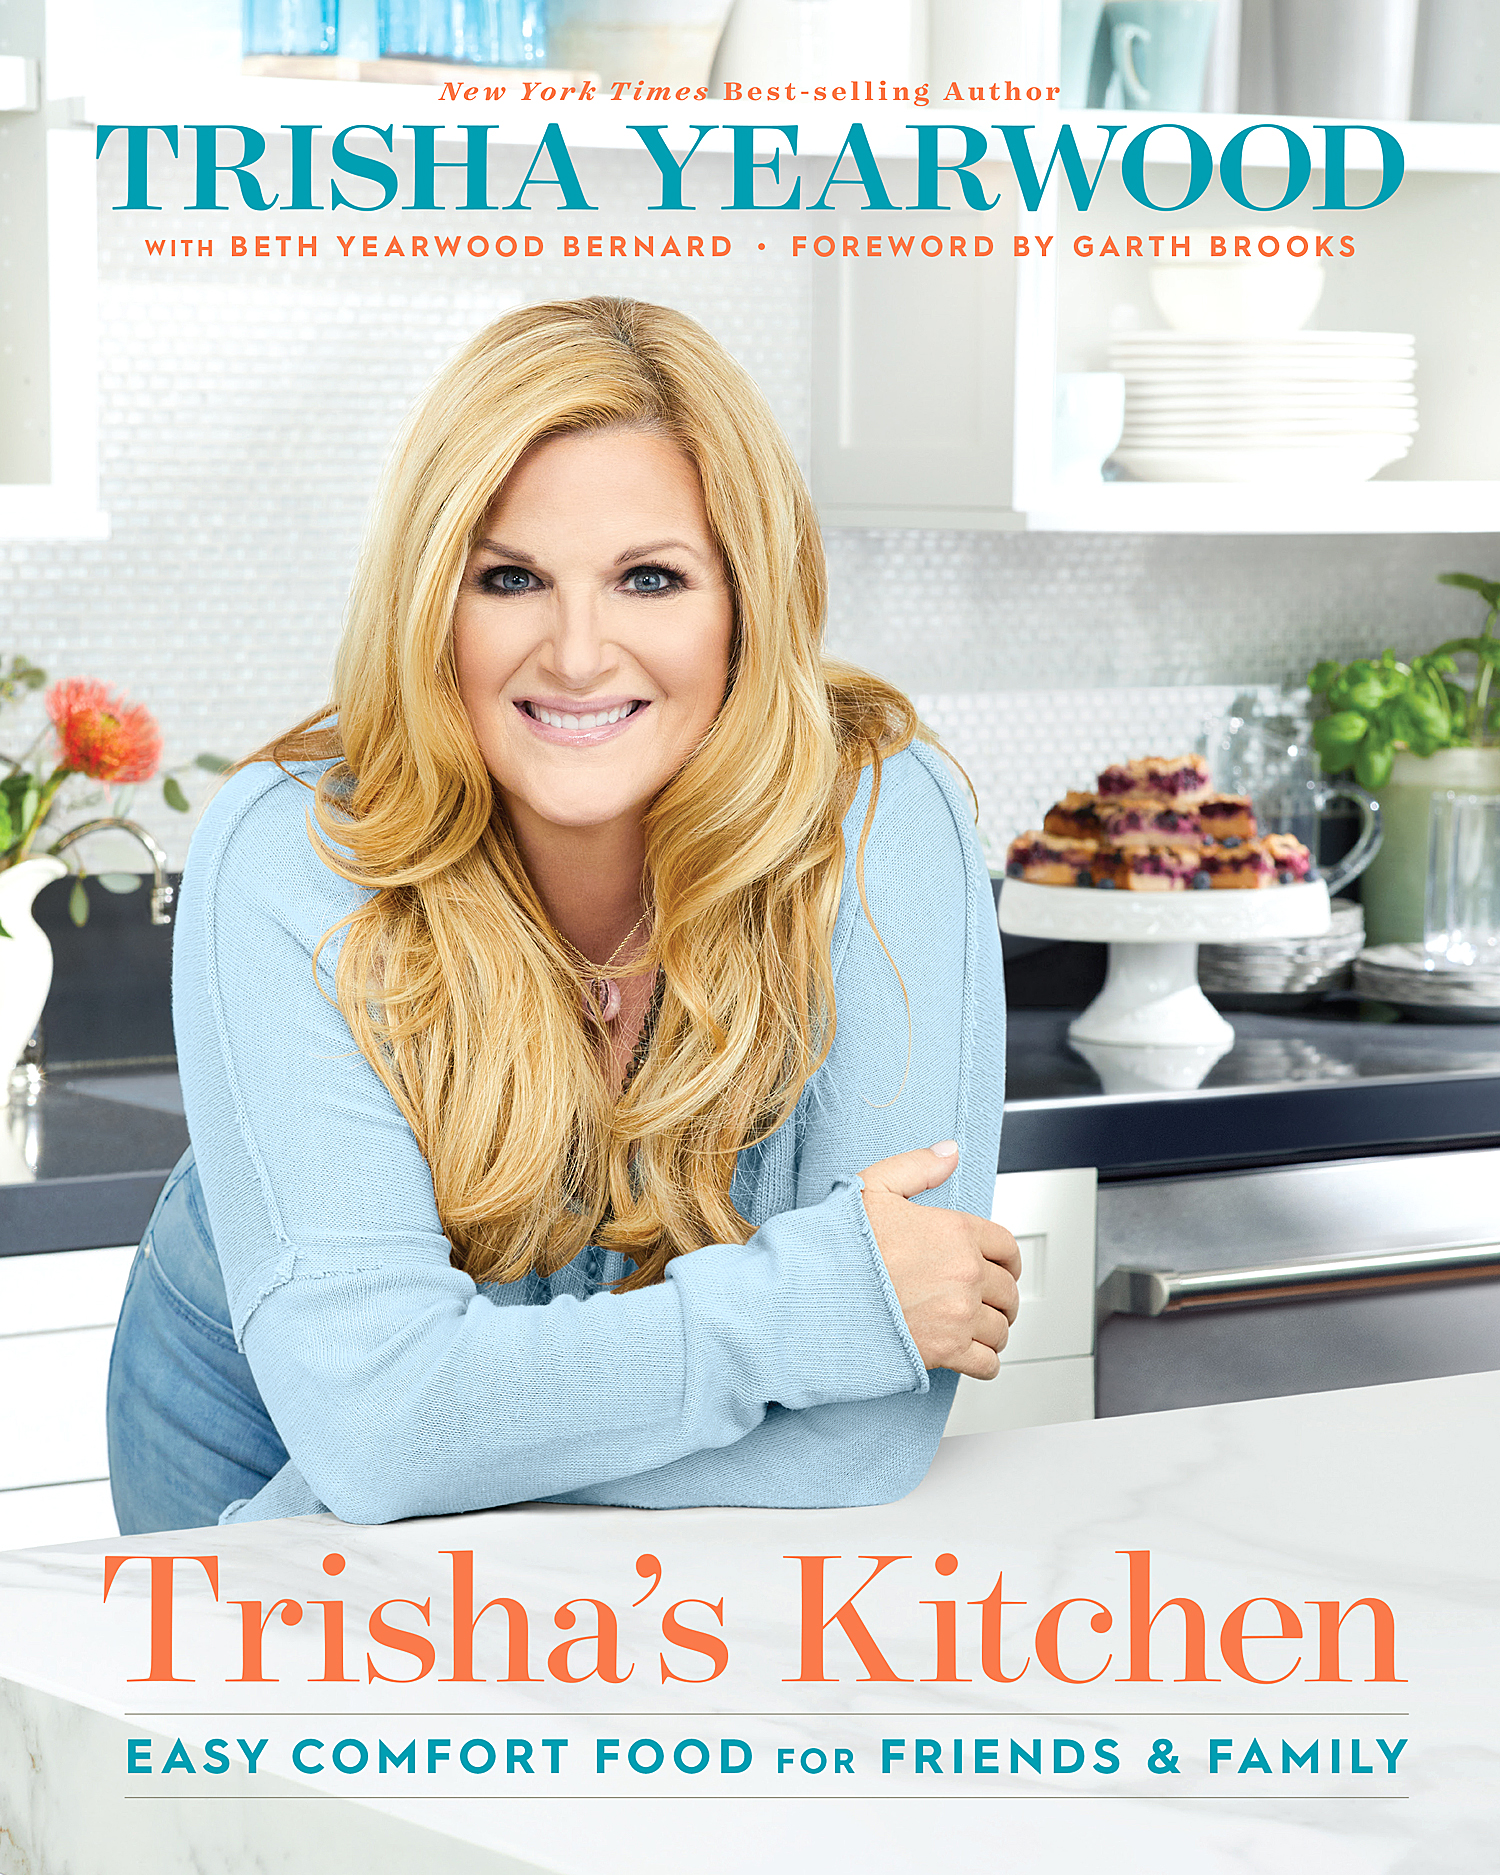 Trisha Yearwood Trisha's Kitchen Easy Comfort Food For Friends & Family